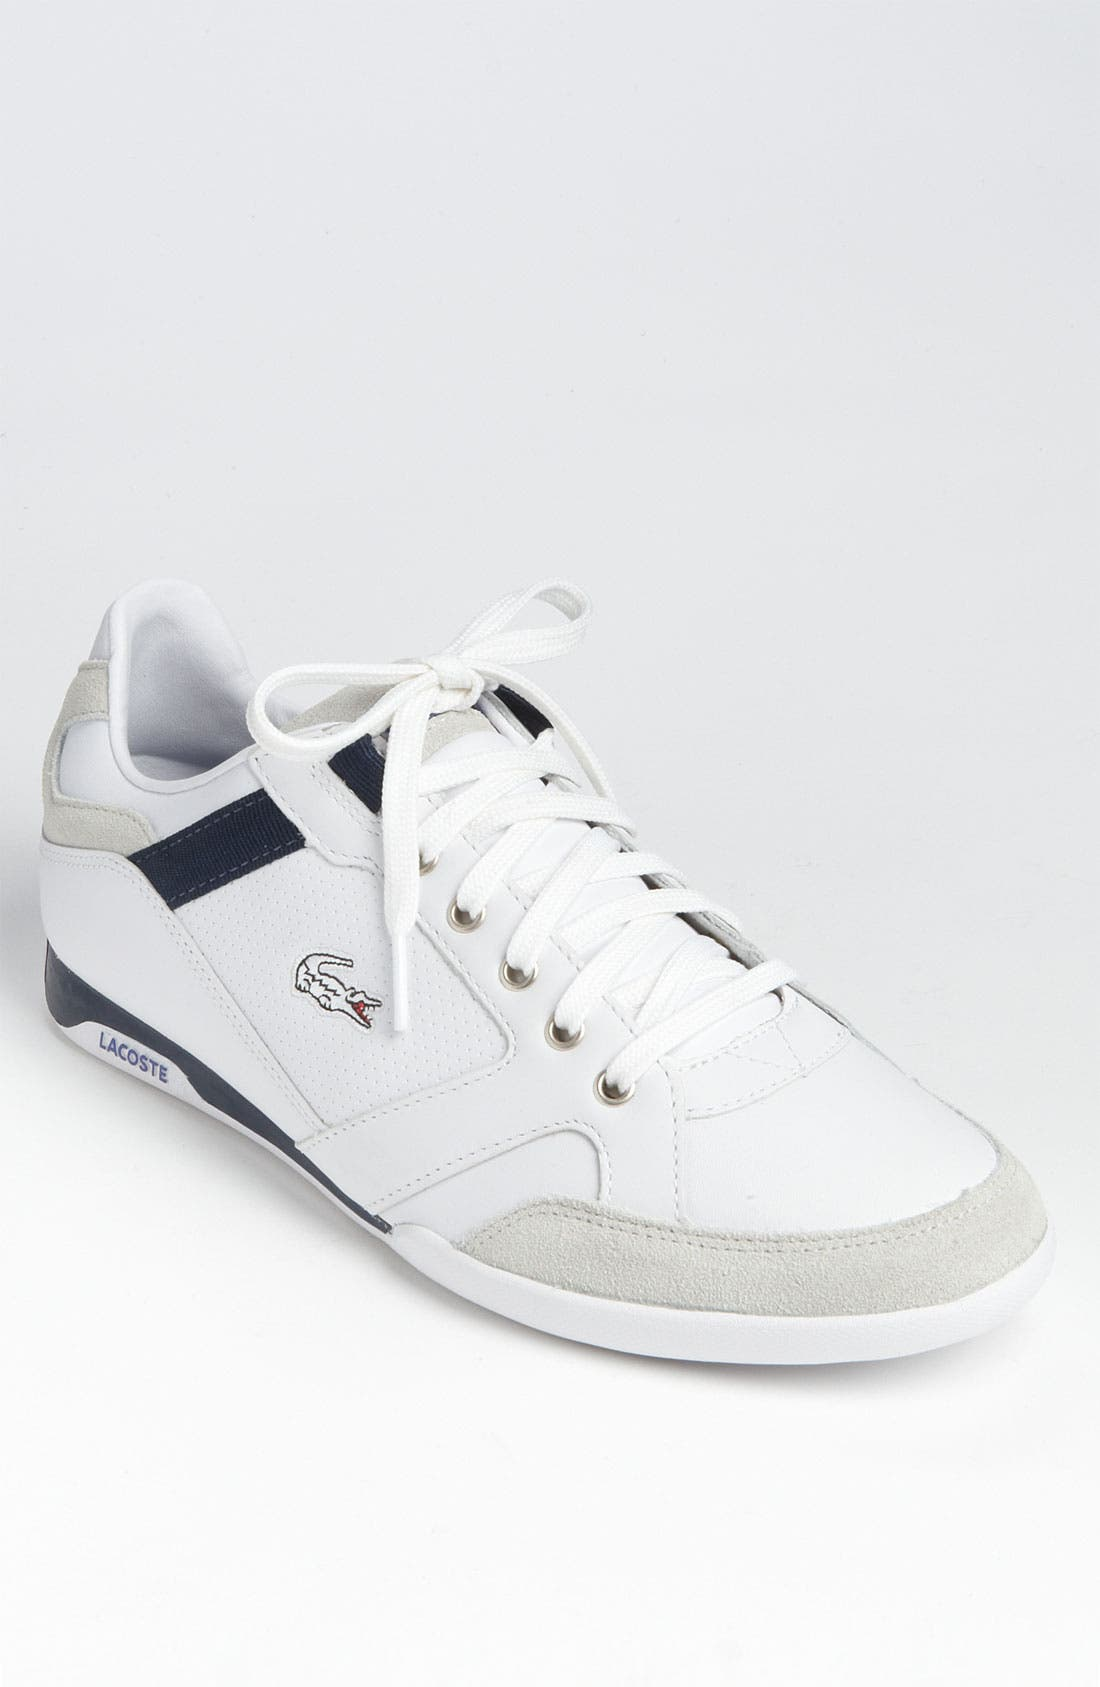 Alternate Image 1 Selected - Lacoste 'Telesio' Sneaker